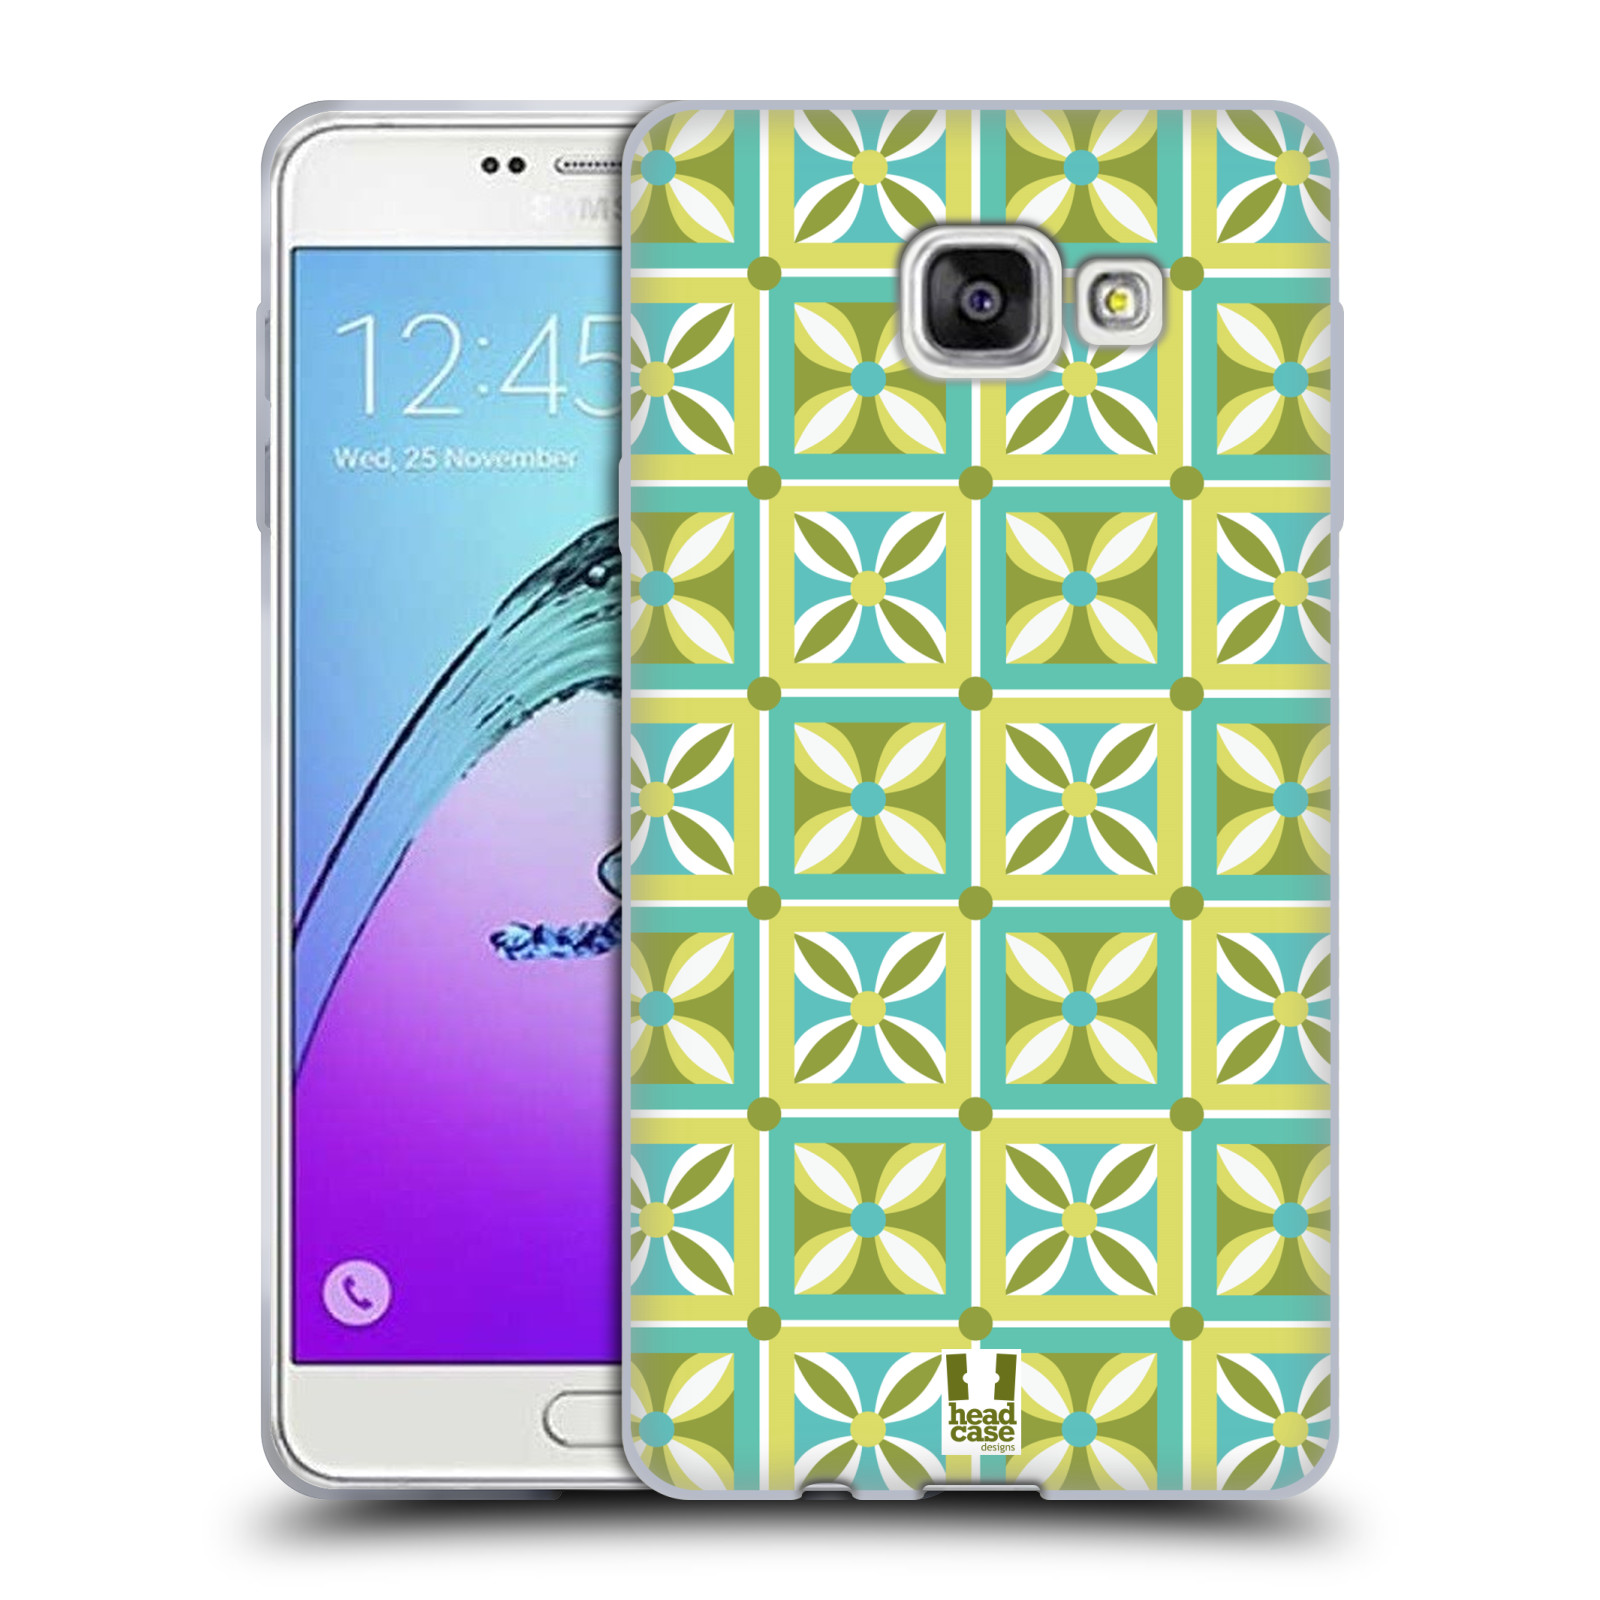 HEAD-CASE-DESIGNS-MOD-MOTIFS-ETUI-COQUE-EN-GEL-POUR-SAMSUNG-GALAXY-A7-2017